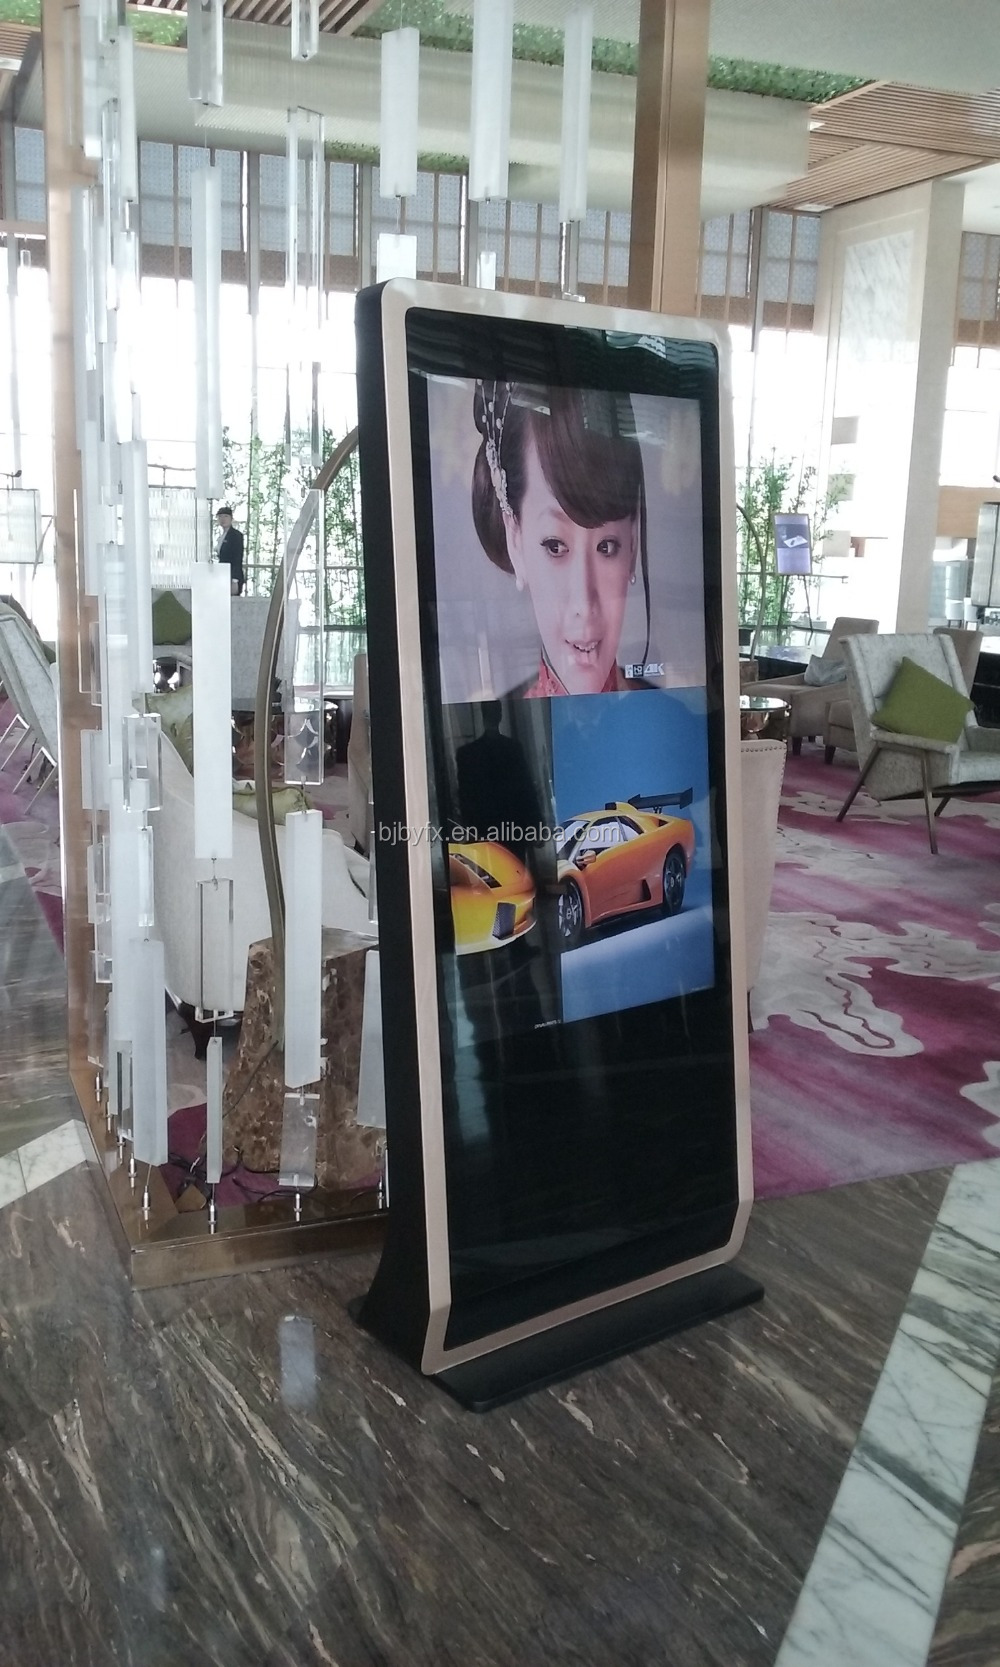 Sungard Exhibition Stand Alone : Large inch interactive info stand alone pop display